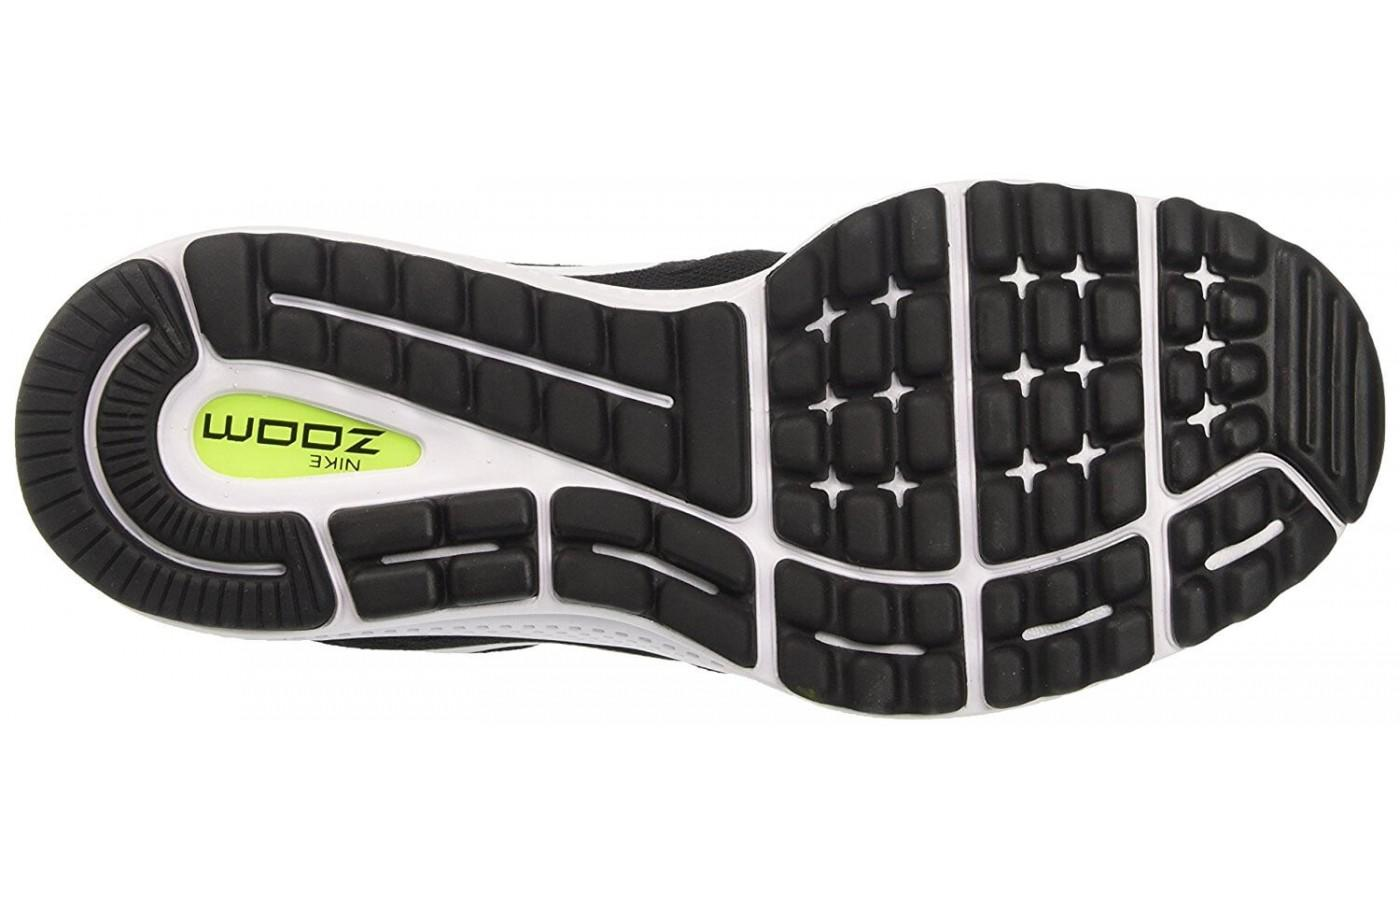 The outsole of the Nike Air Zoom Vomero 12 uses two kinds of rubber and a crash rail